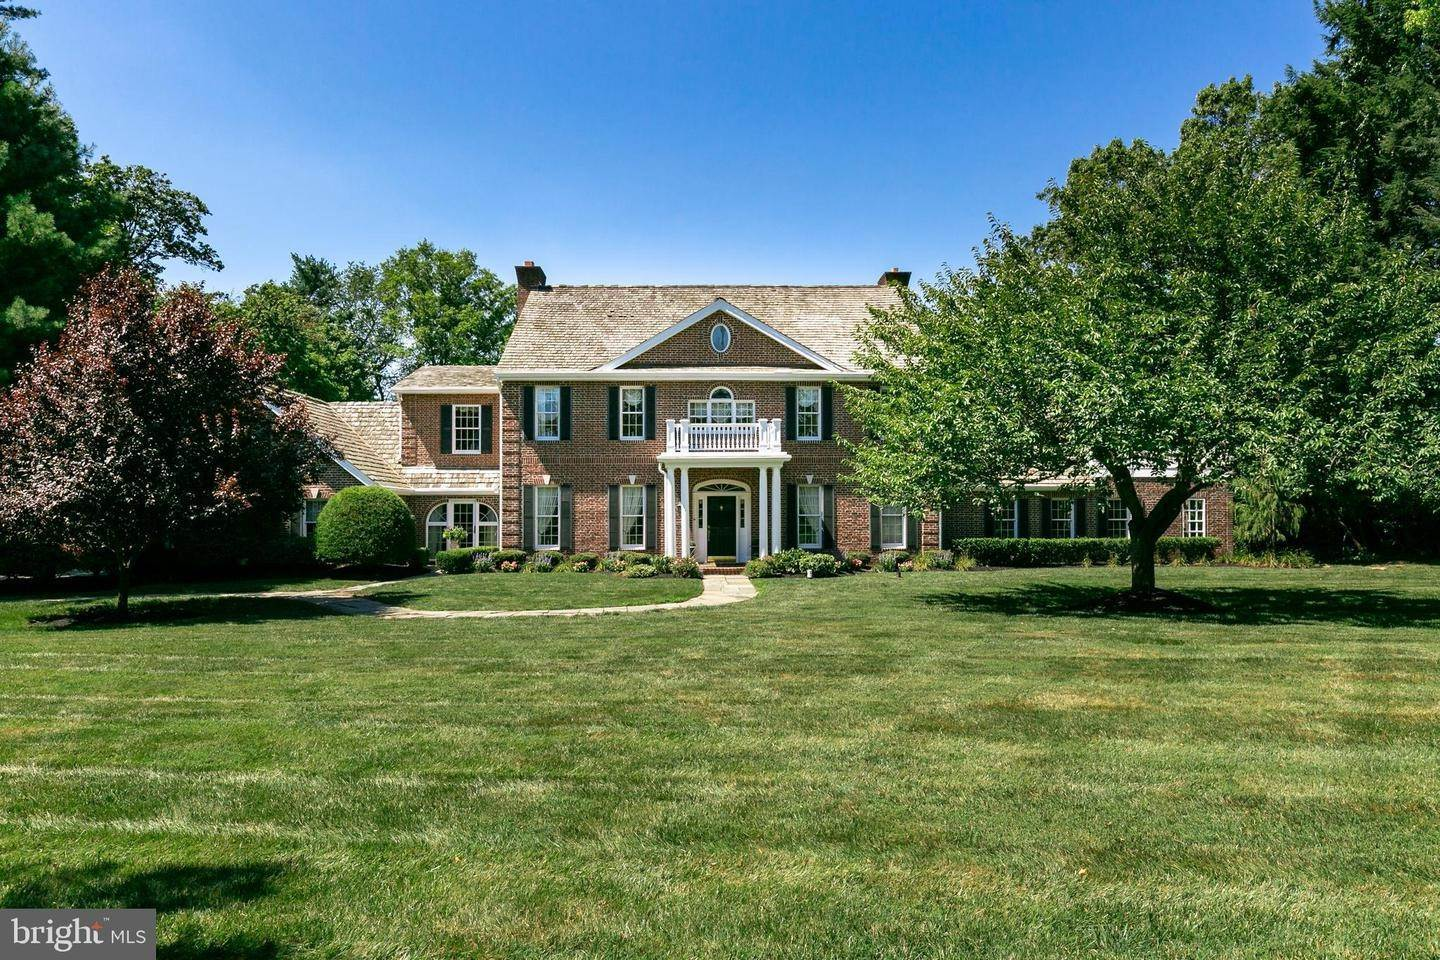 Detached House for Sale at 720 GOLF VIEW Road Moorestown, New Jersey 08057 United States